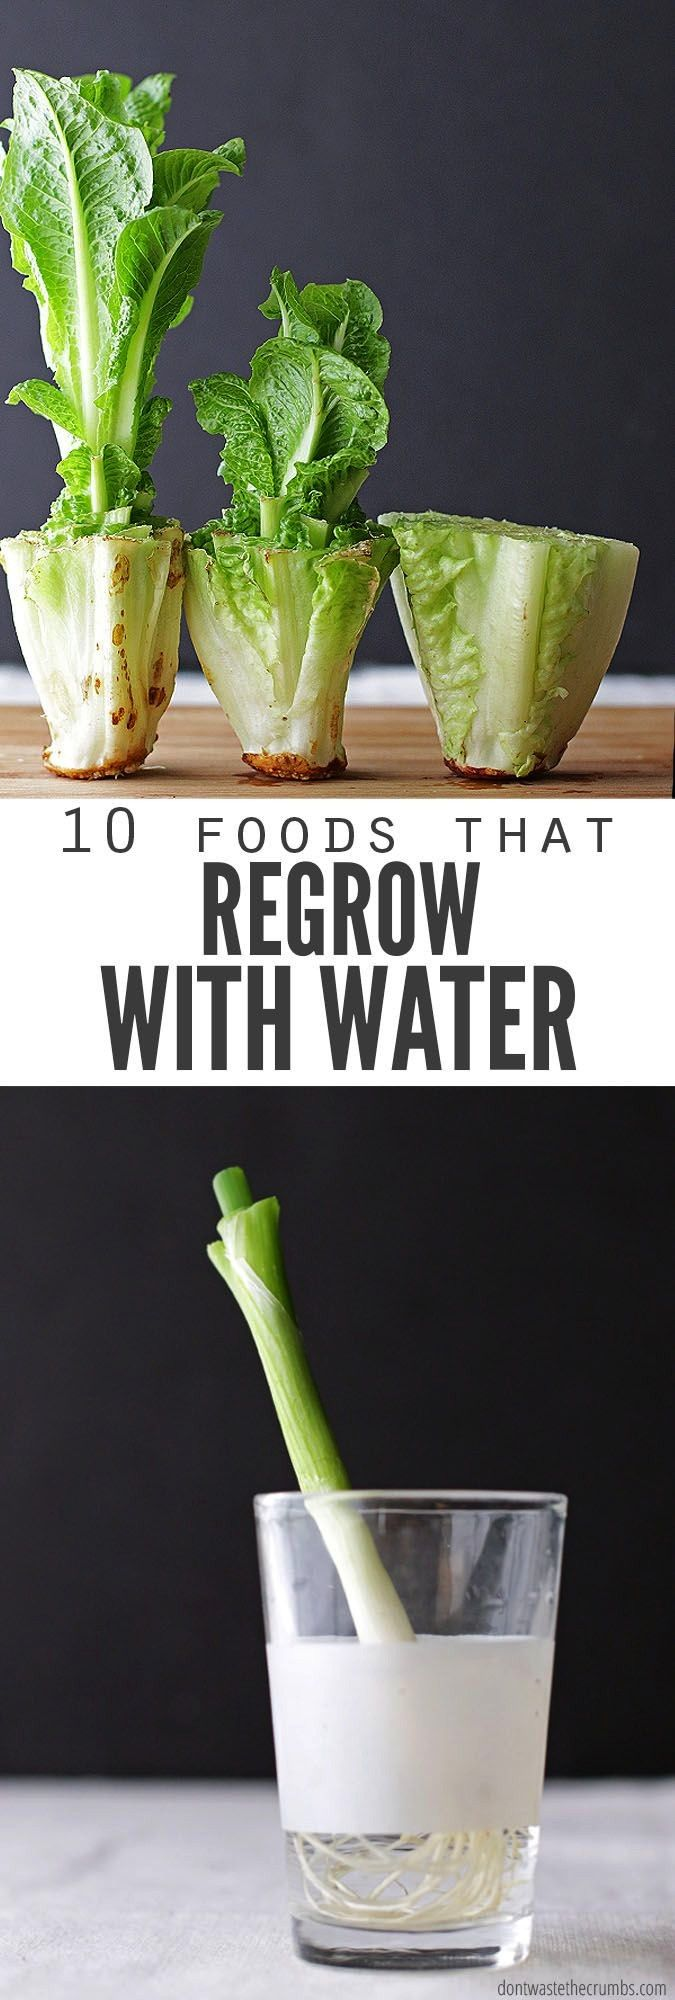 money and regrow food scraps in water Perfect if you dont have room for a vegetable garden  are trying to save a few bucks But which veggies or fruit will regrow from scr...